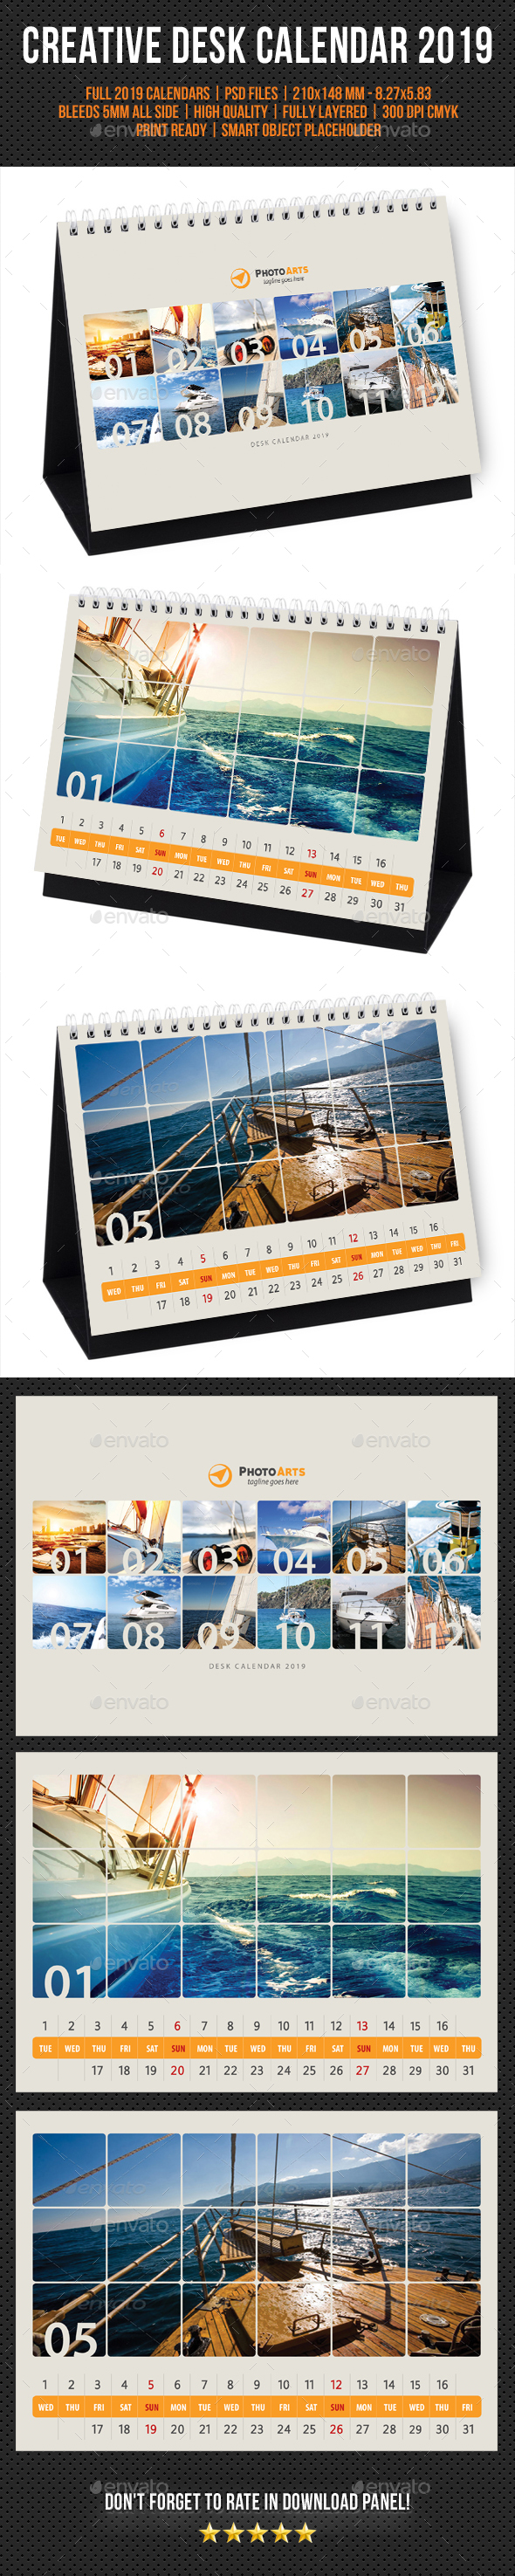 Creative Desk Calendar 2019 V28 - Calendars Stationery